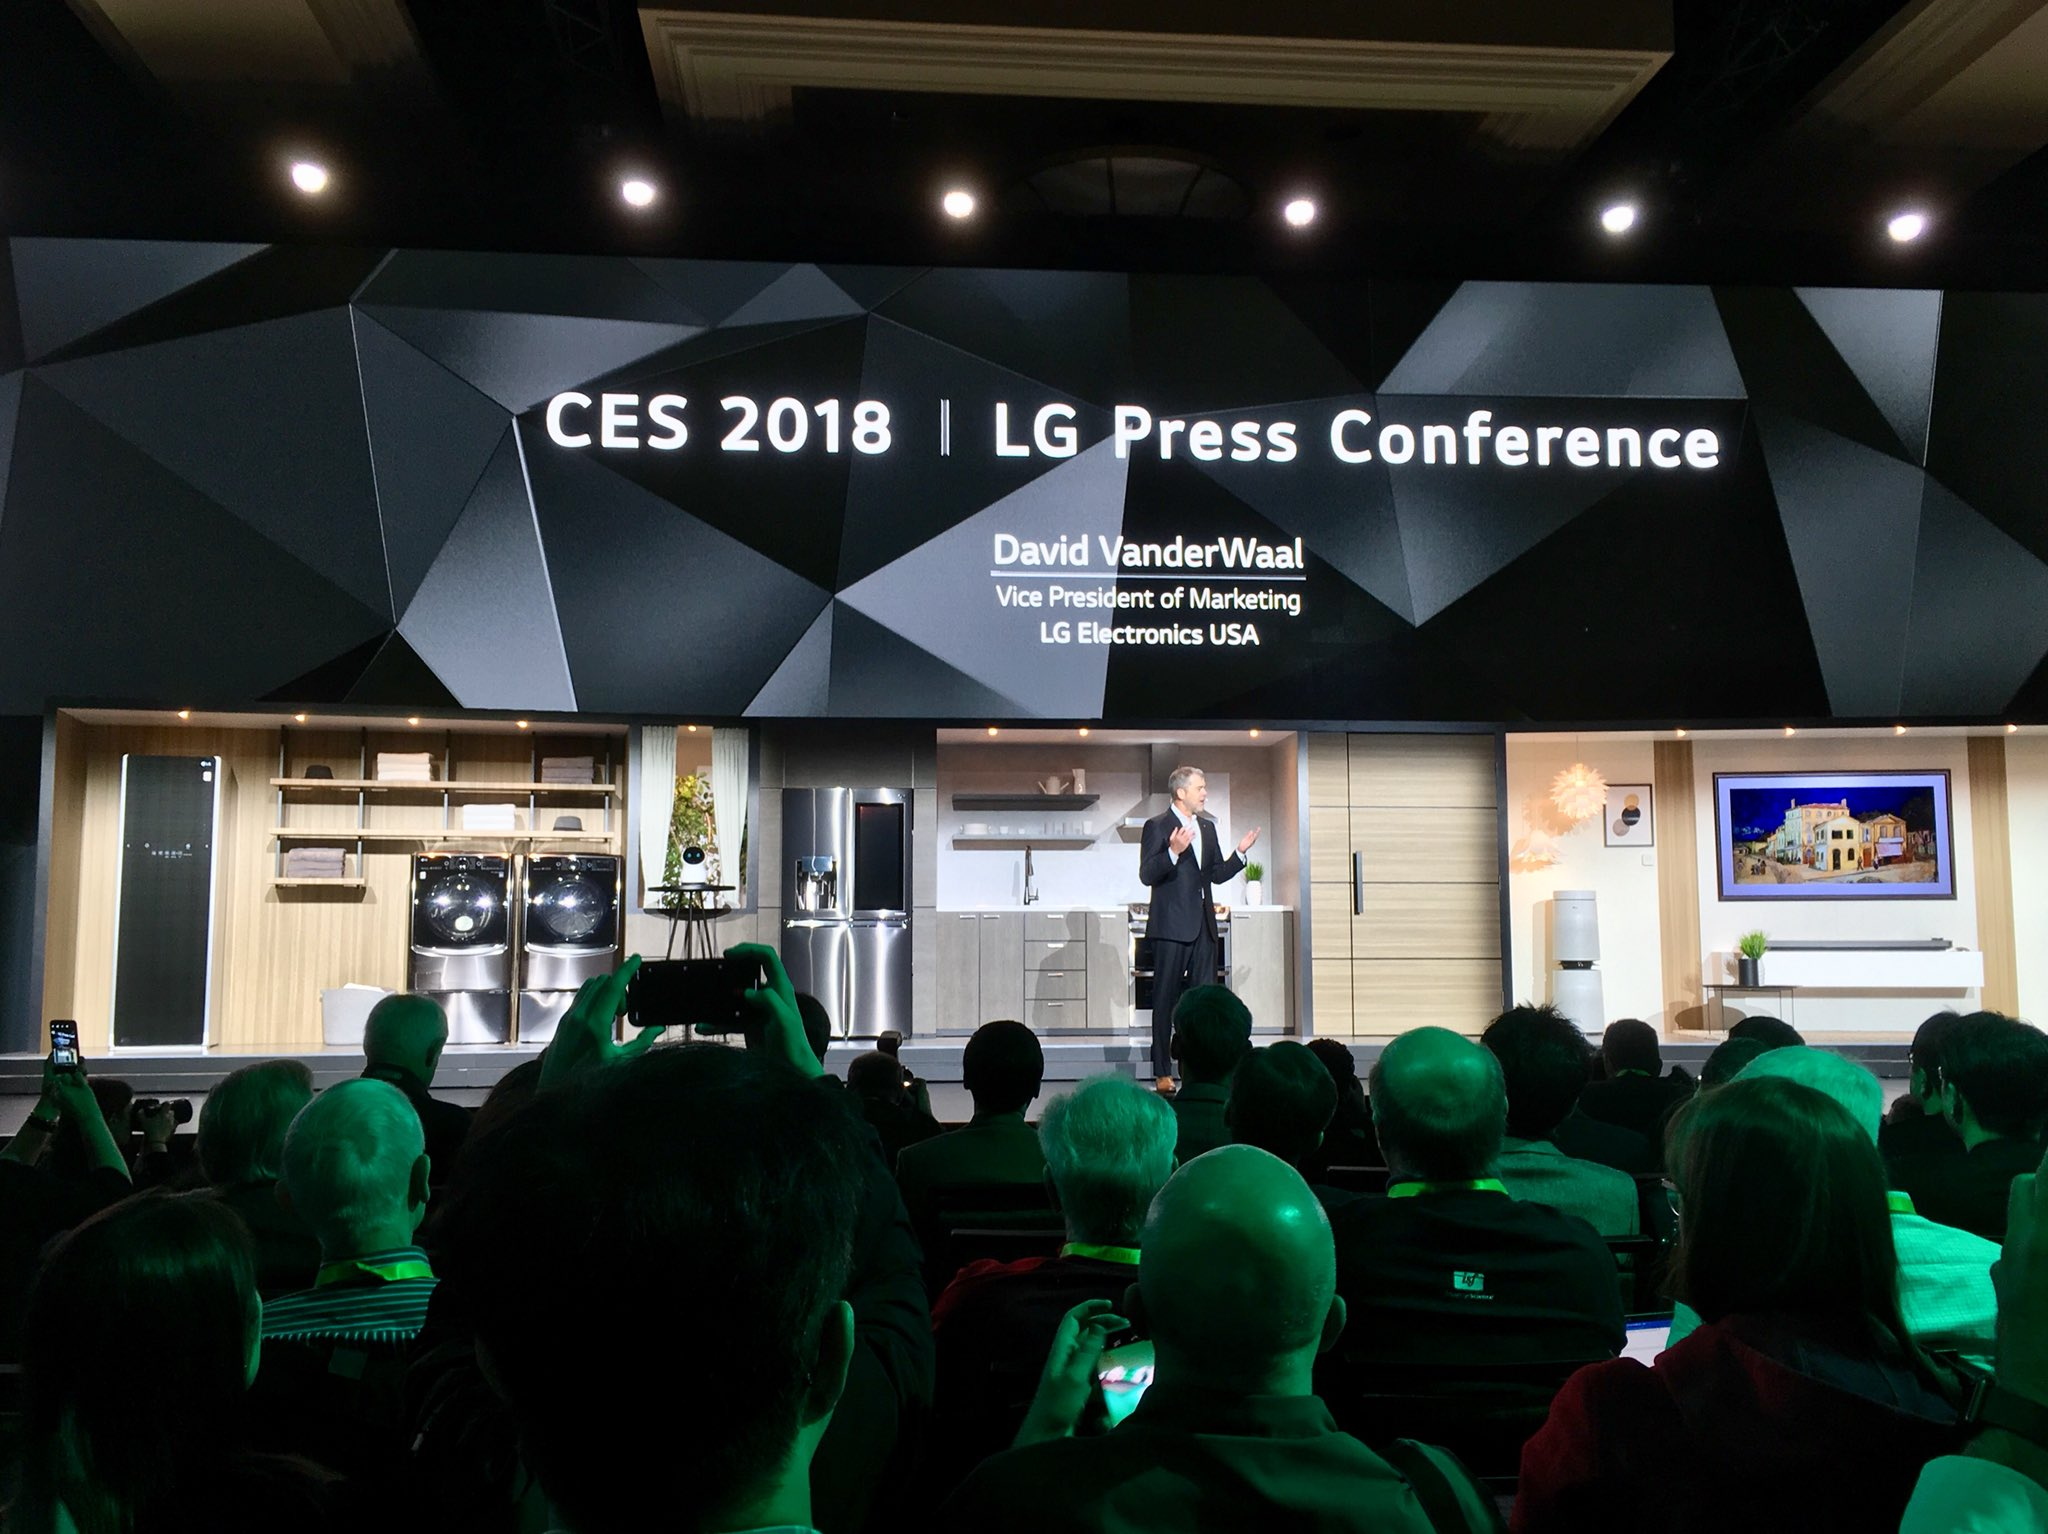 At #CES2018, Lessons Emerge on Brand Loyalty and a Connected Ecosystem DTCA3ZIVwAAkSn7